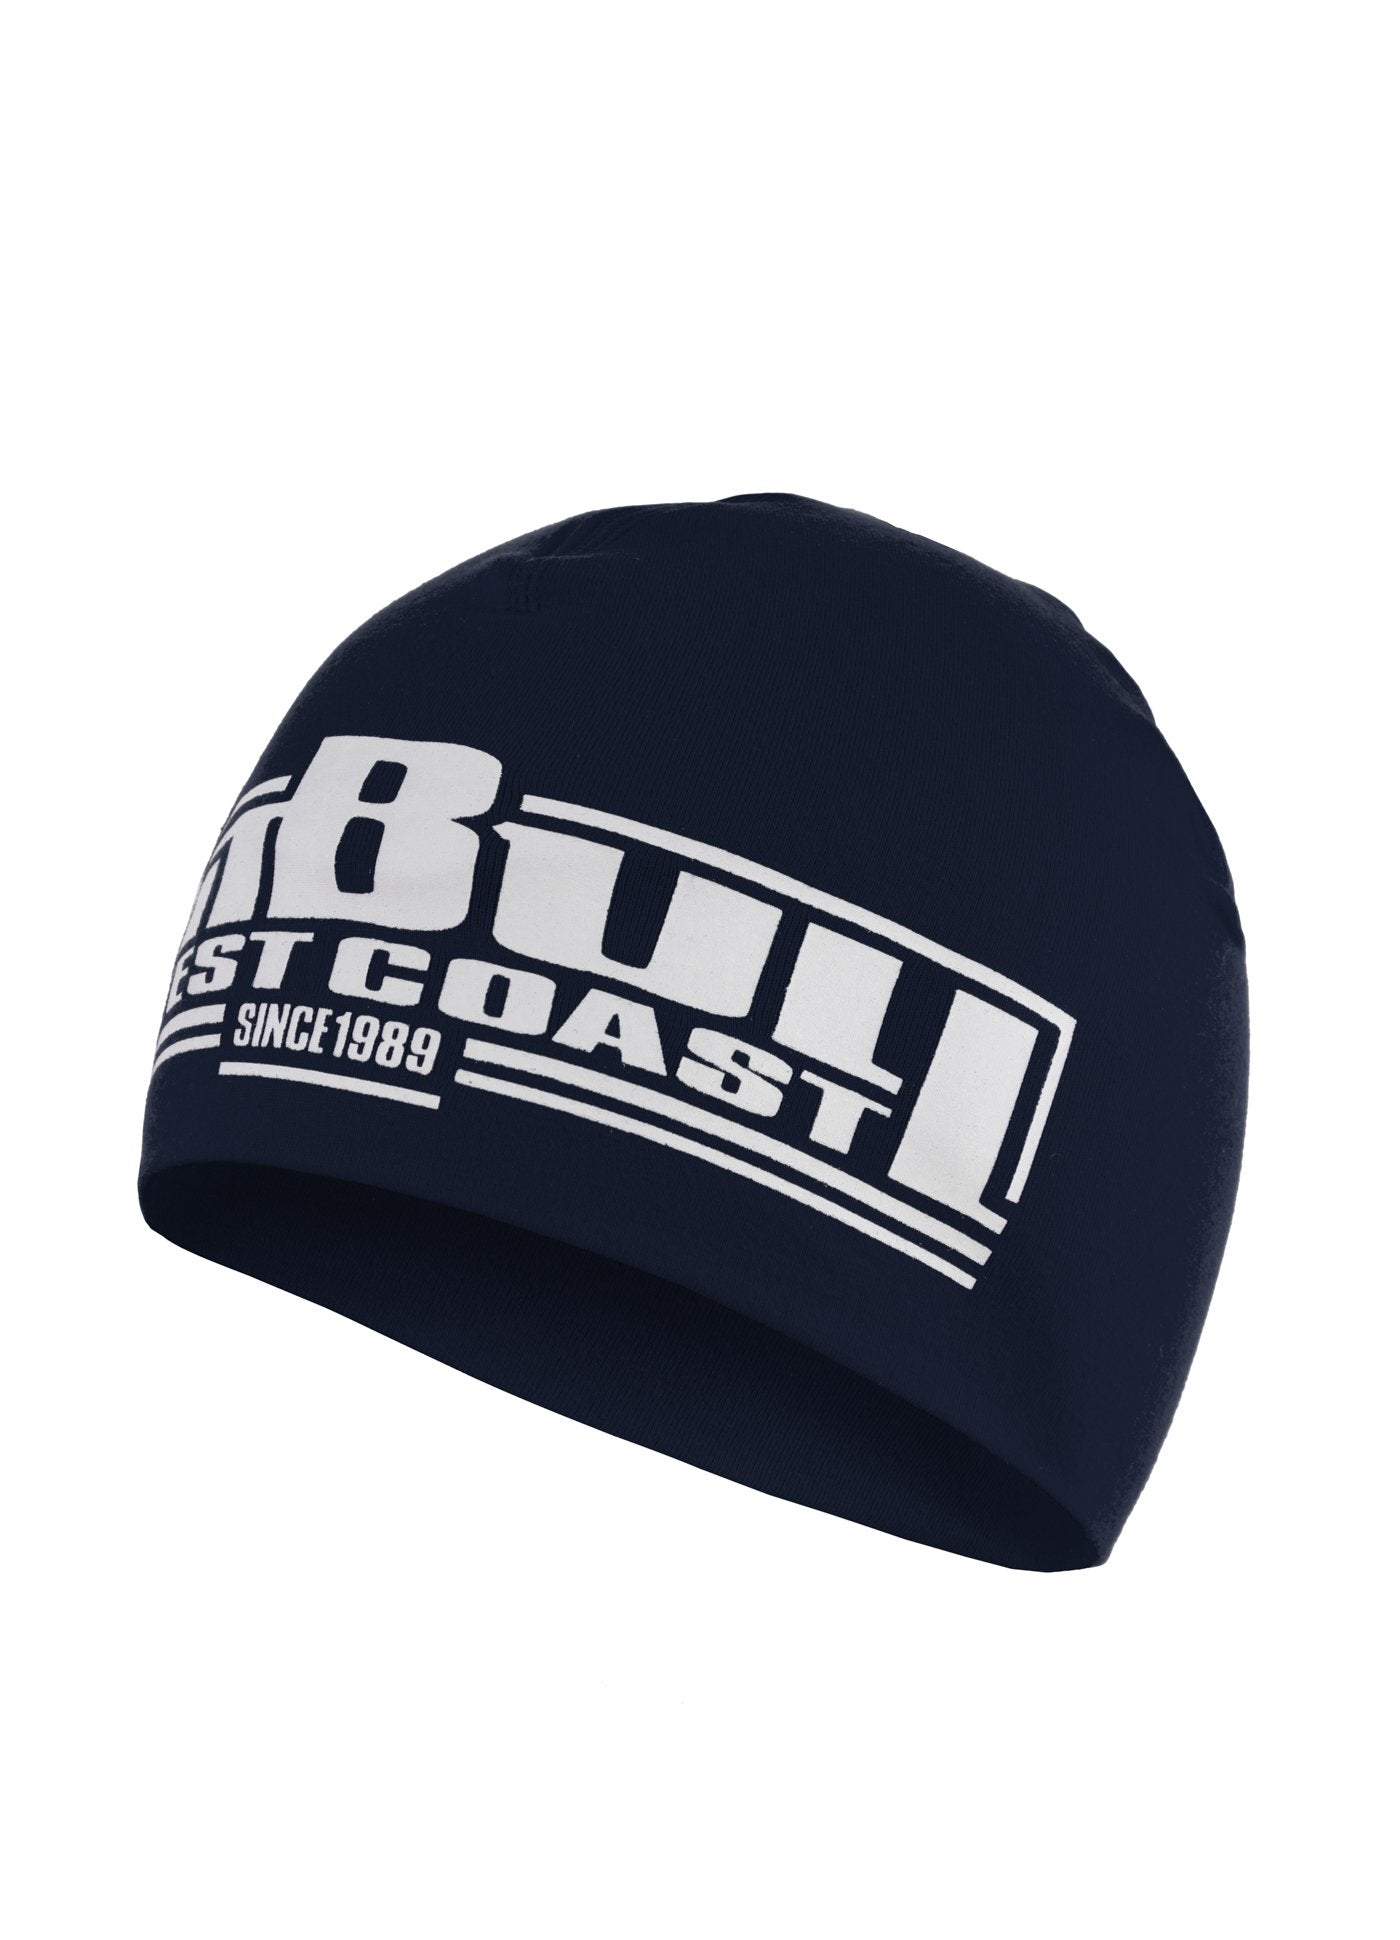 CLASSIC BOXING COMPRESSION BEANIE DARK NAVY - Pitbull West Coast  UK Store